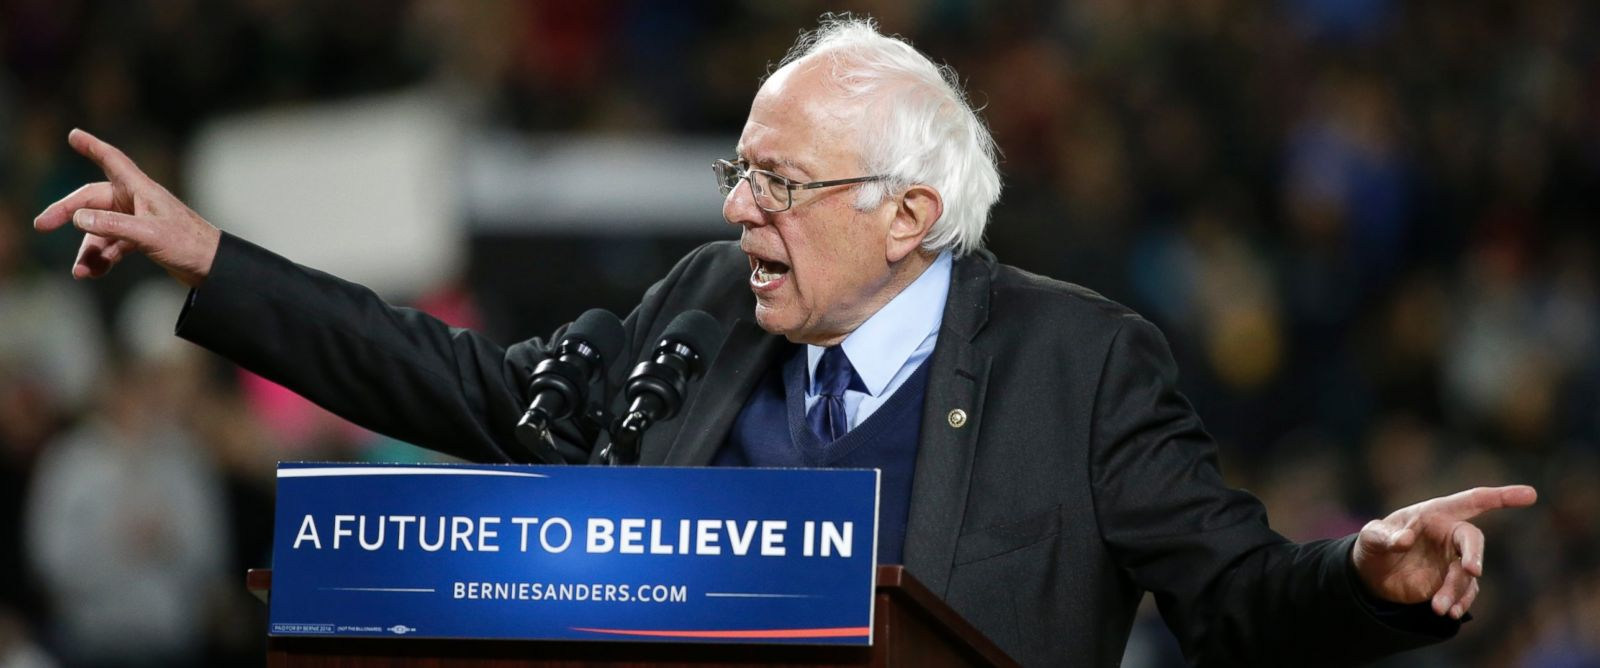 PHOTO: Democratic presidential candidate Sen. Bernie Sanders, I-Vt., speaks at a rally, March 25, 2016, in Seattle.